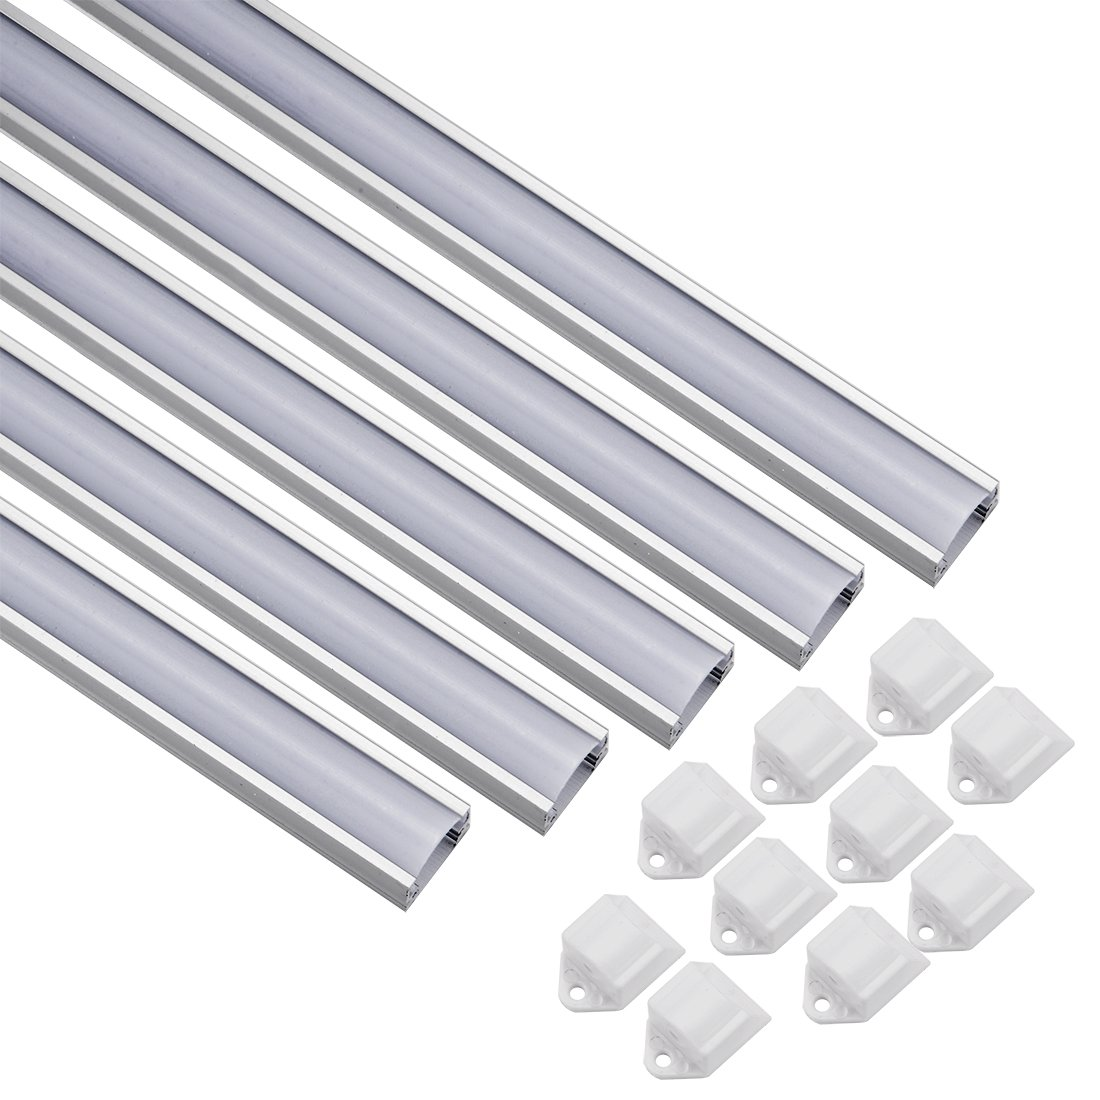 uxcell 5Pcs CN-504B 0.5m 16.5x10mm LED Aluminum Channel System w Cover for LED Strip Light Installations